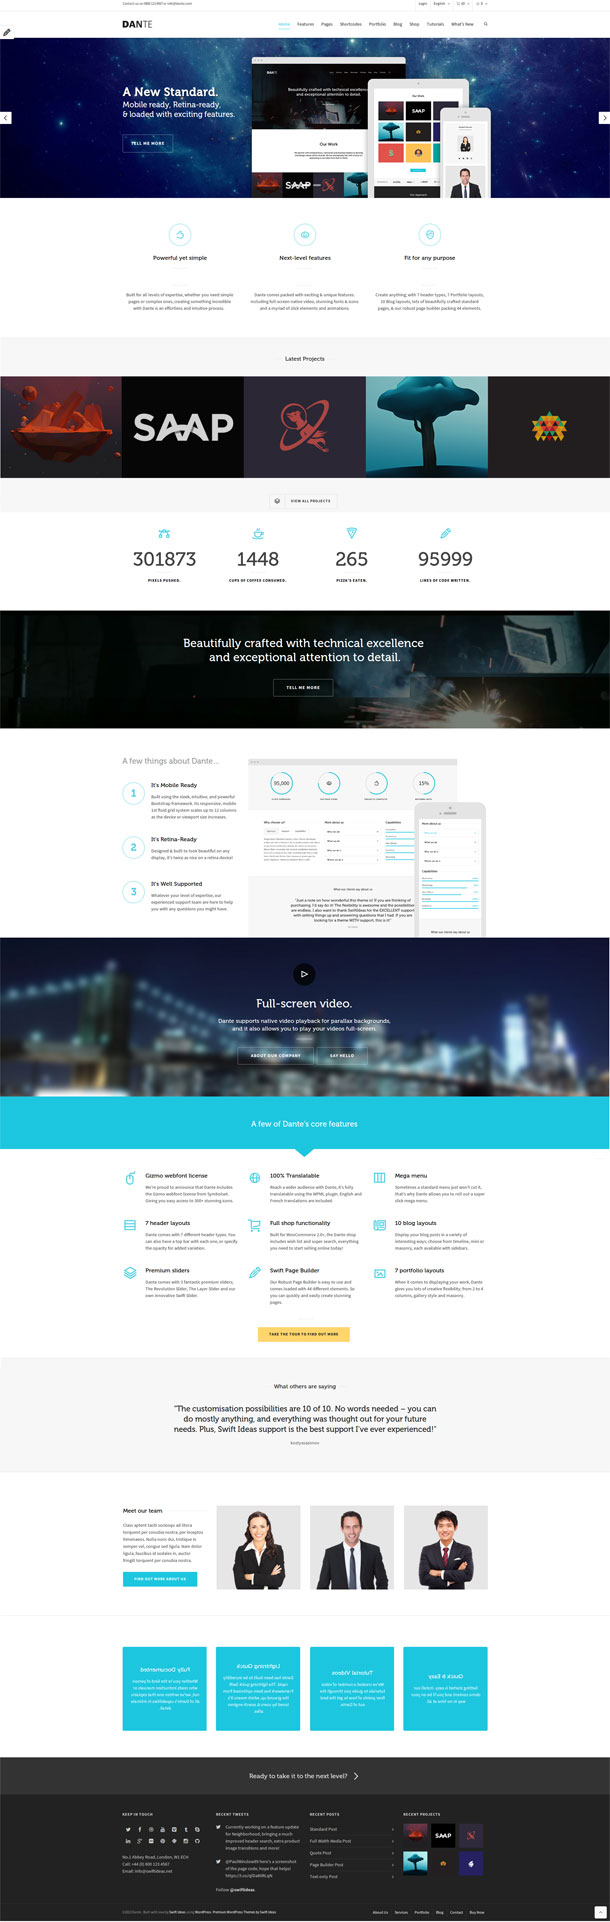 Dante Great WordPress Theme for 2014 image